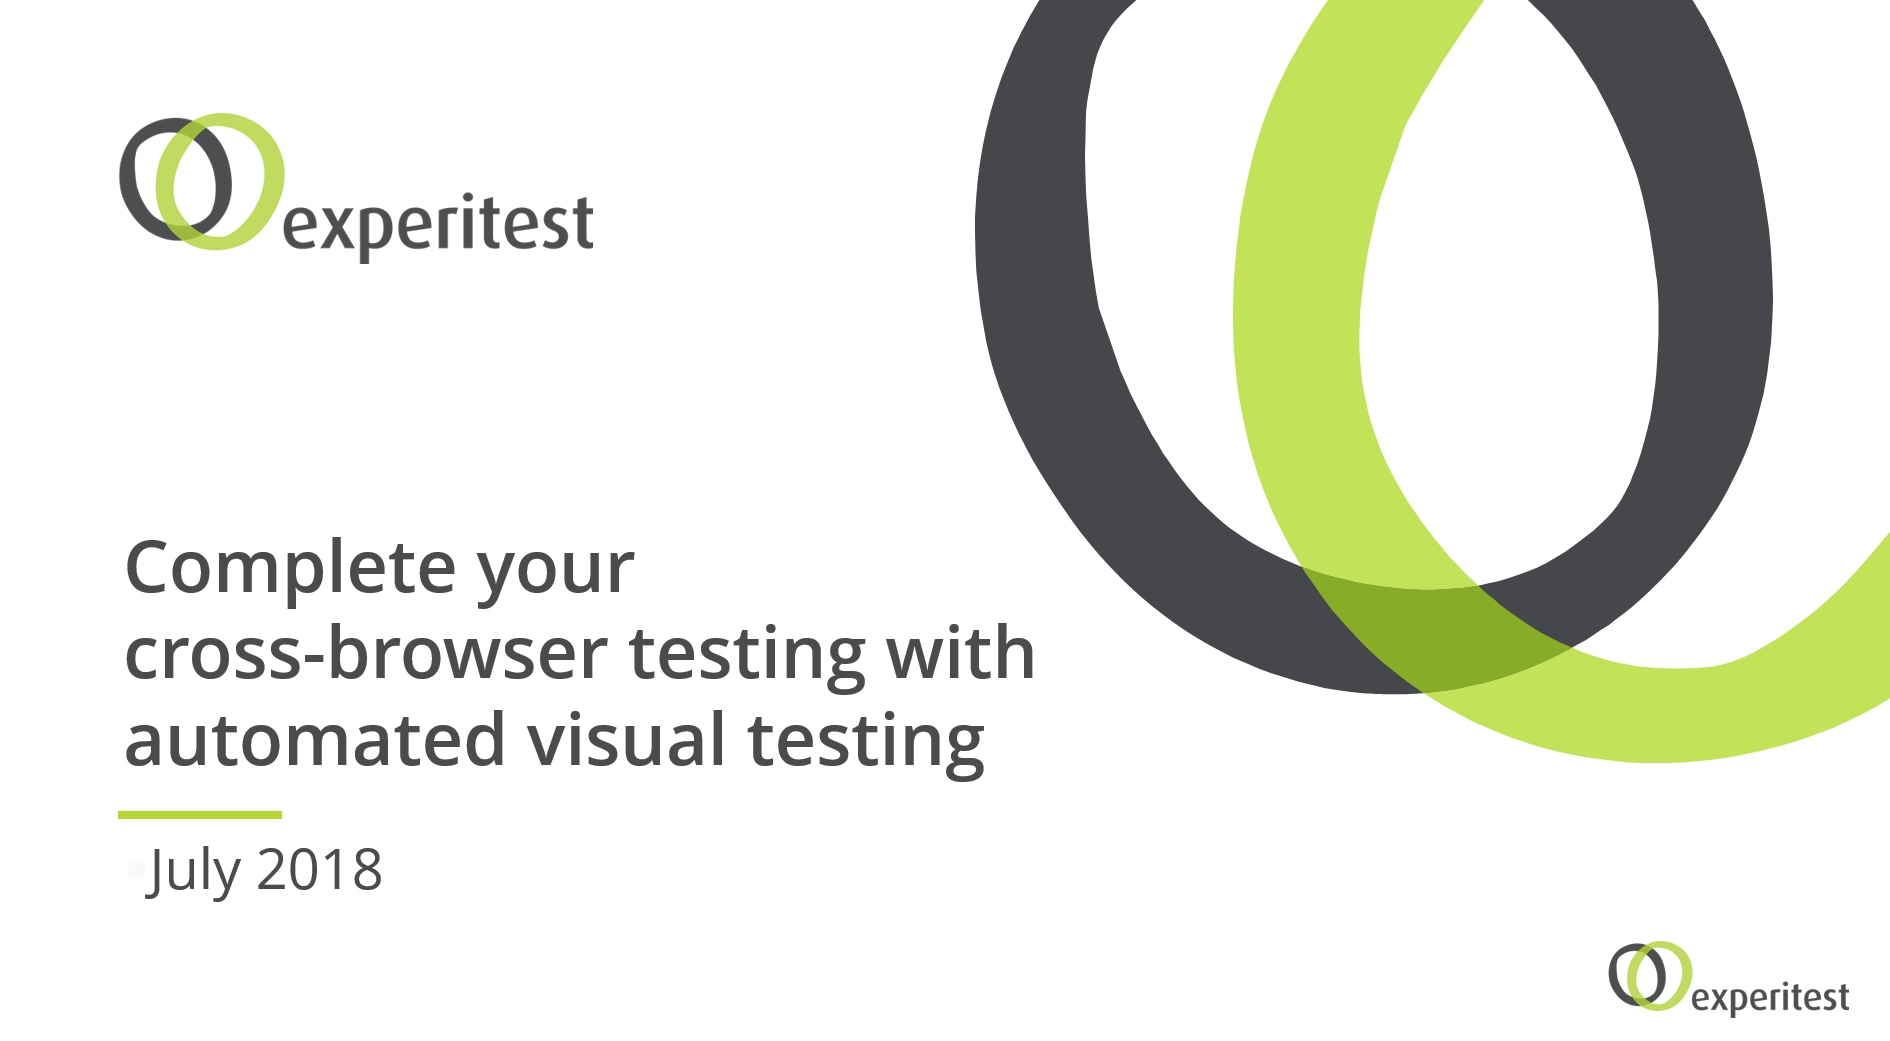 Complete your cross-browser testing with automated visual testing